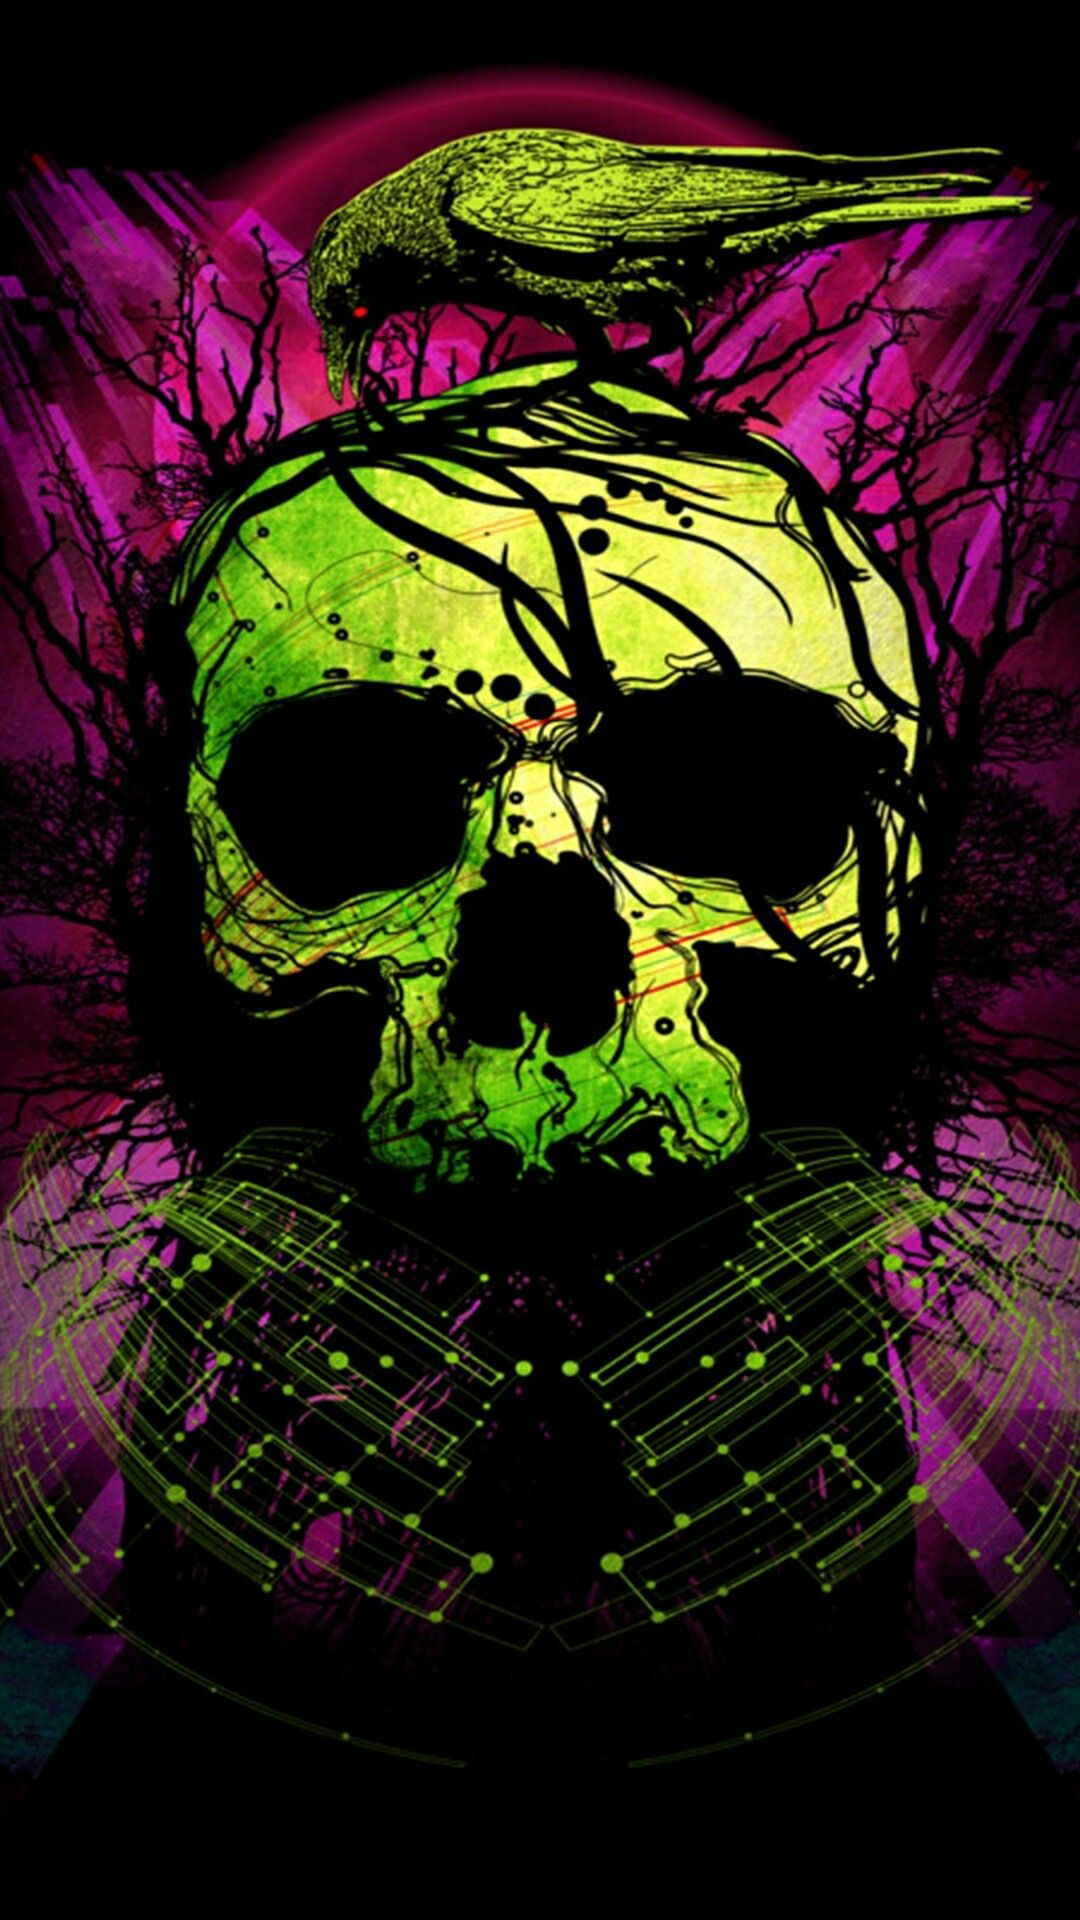 Pin by christina kirkendall on wallpapers 2 Skull